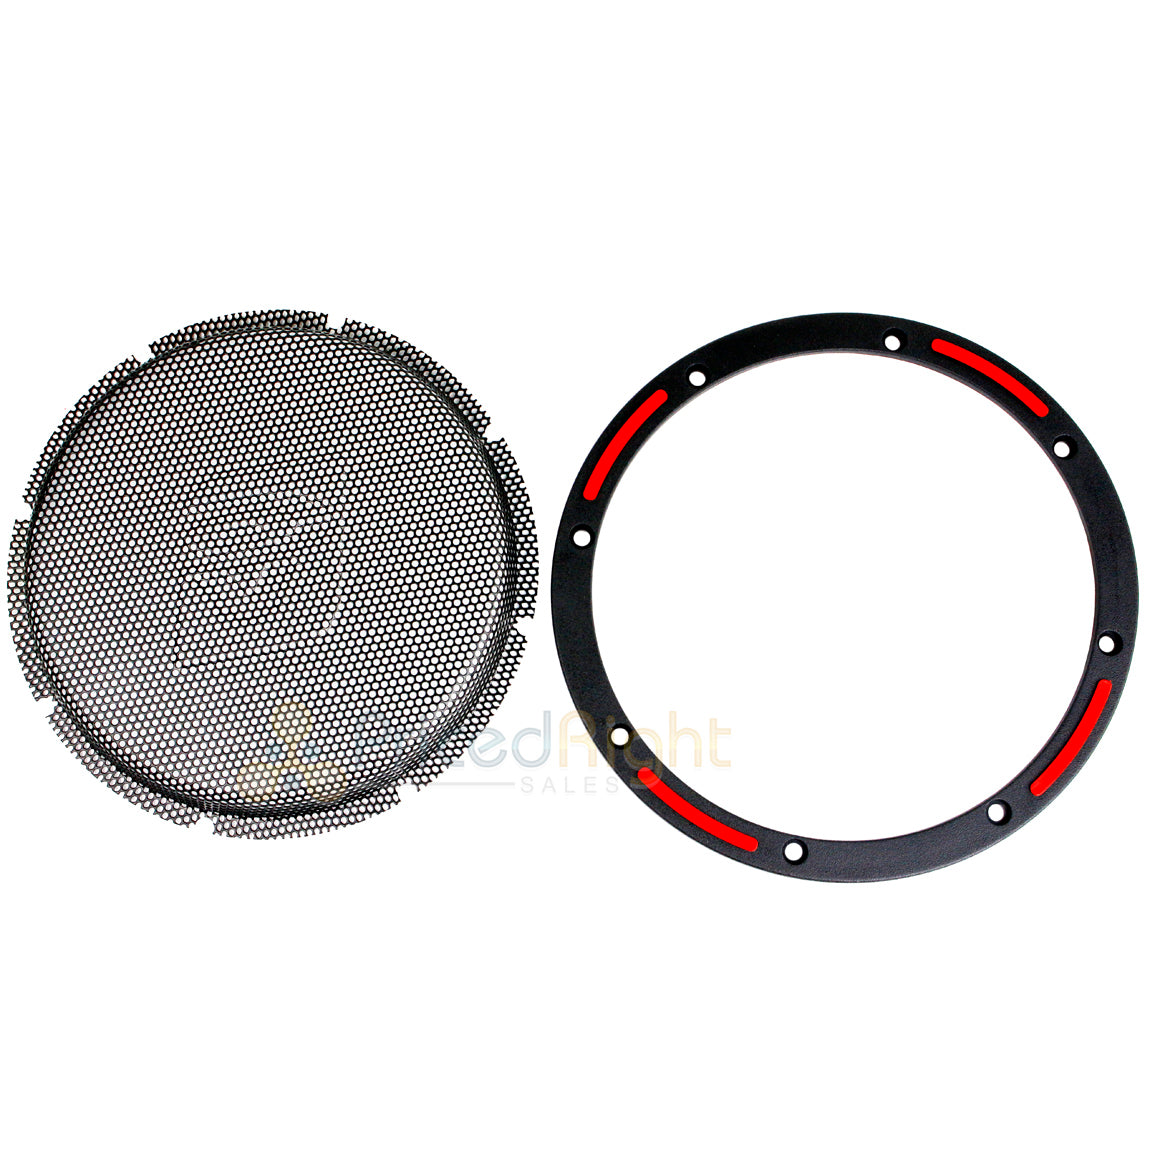 "10"" Subwoofer Mesh Grill Speaker Accessory Black Cerwin Vega H710GRL for H7104D"